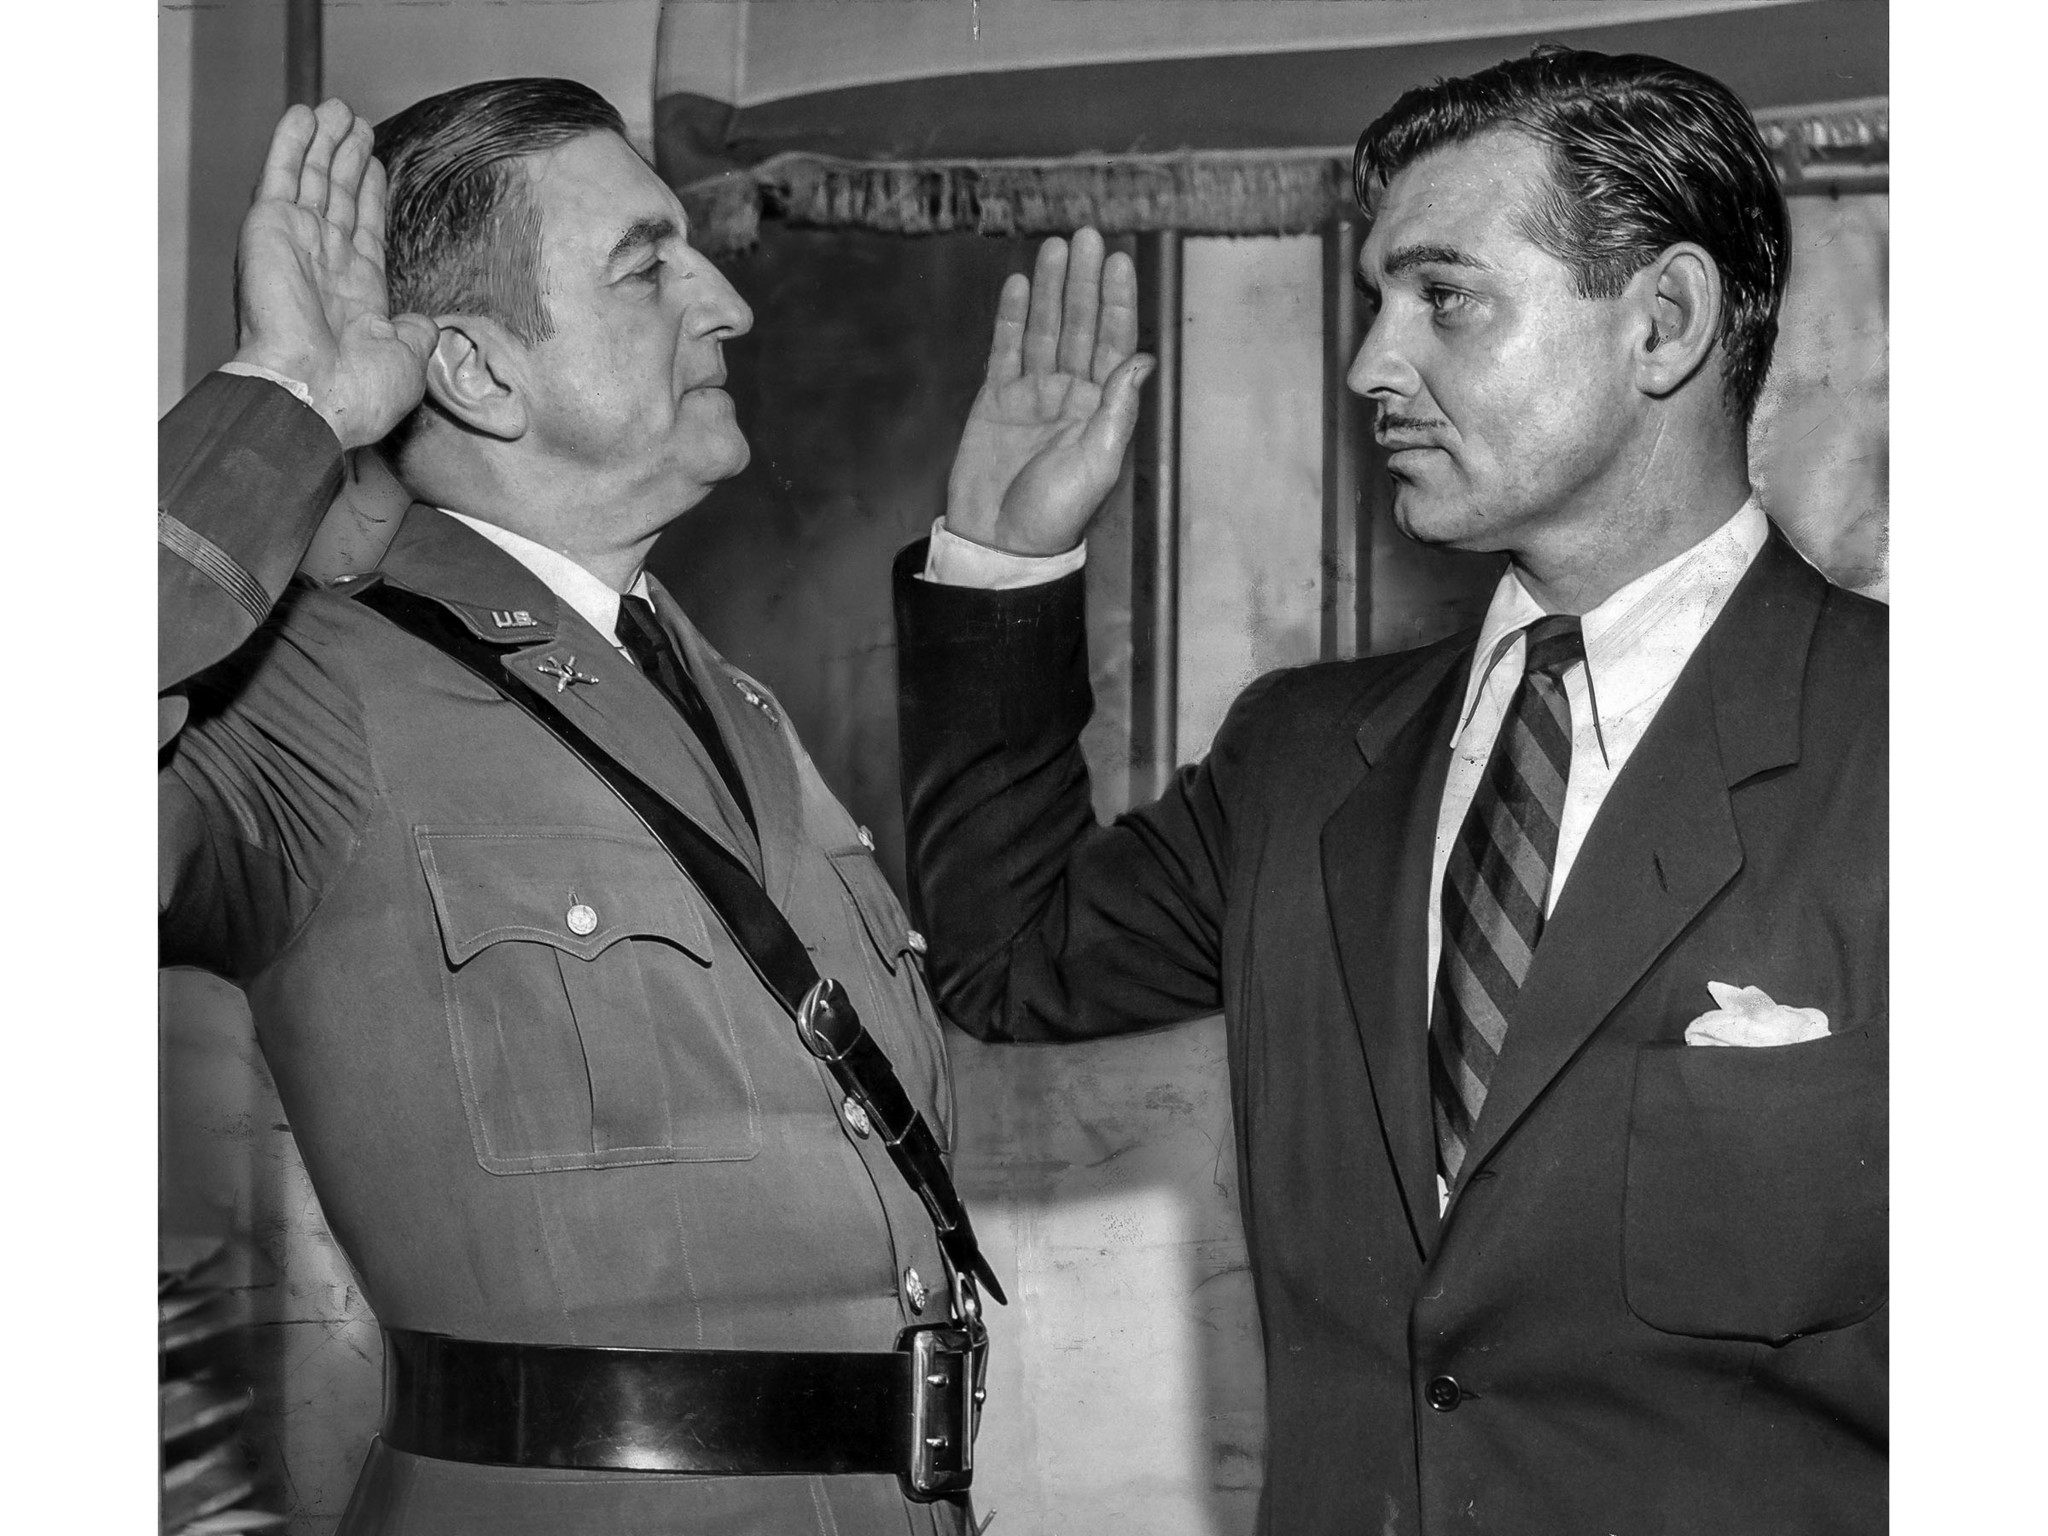 Aug. 12, 1942: Actor Clark Gable takes the oath as Army private from Col. Malcolm P. Andruss at the at t